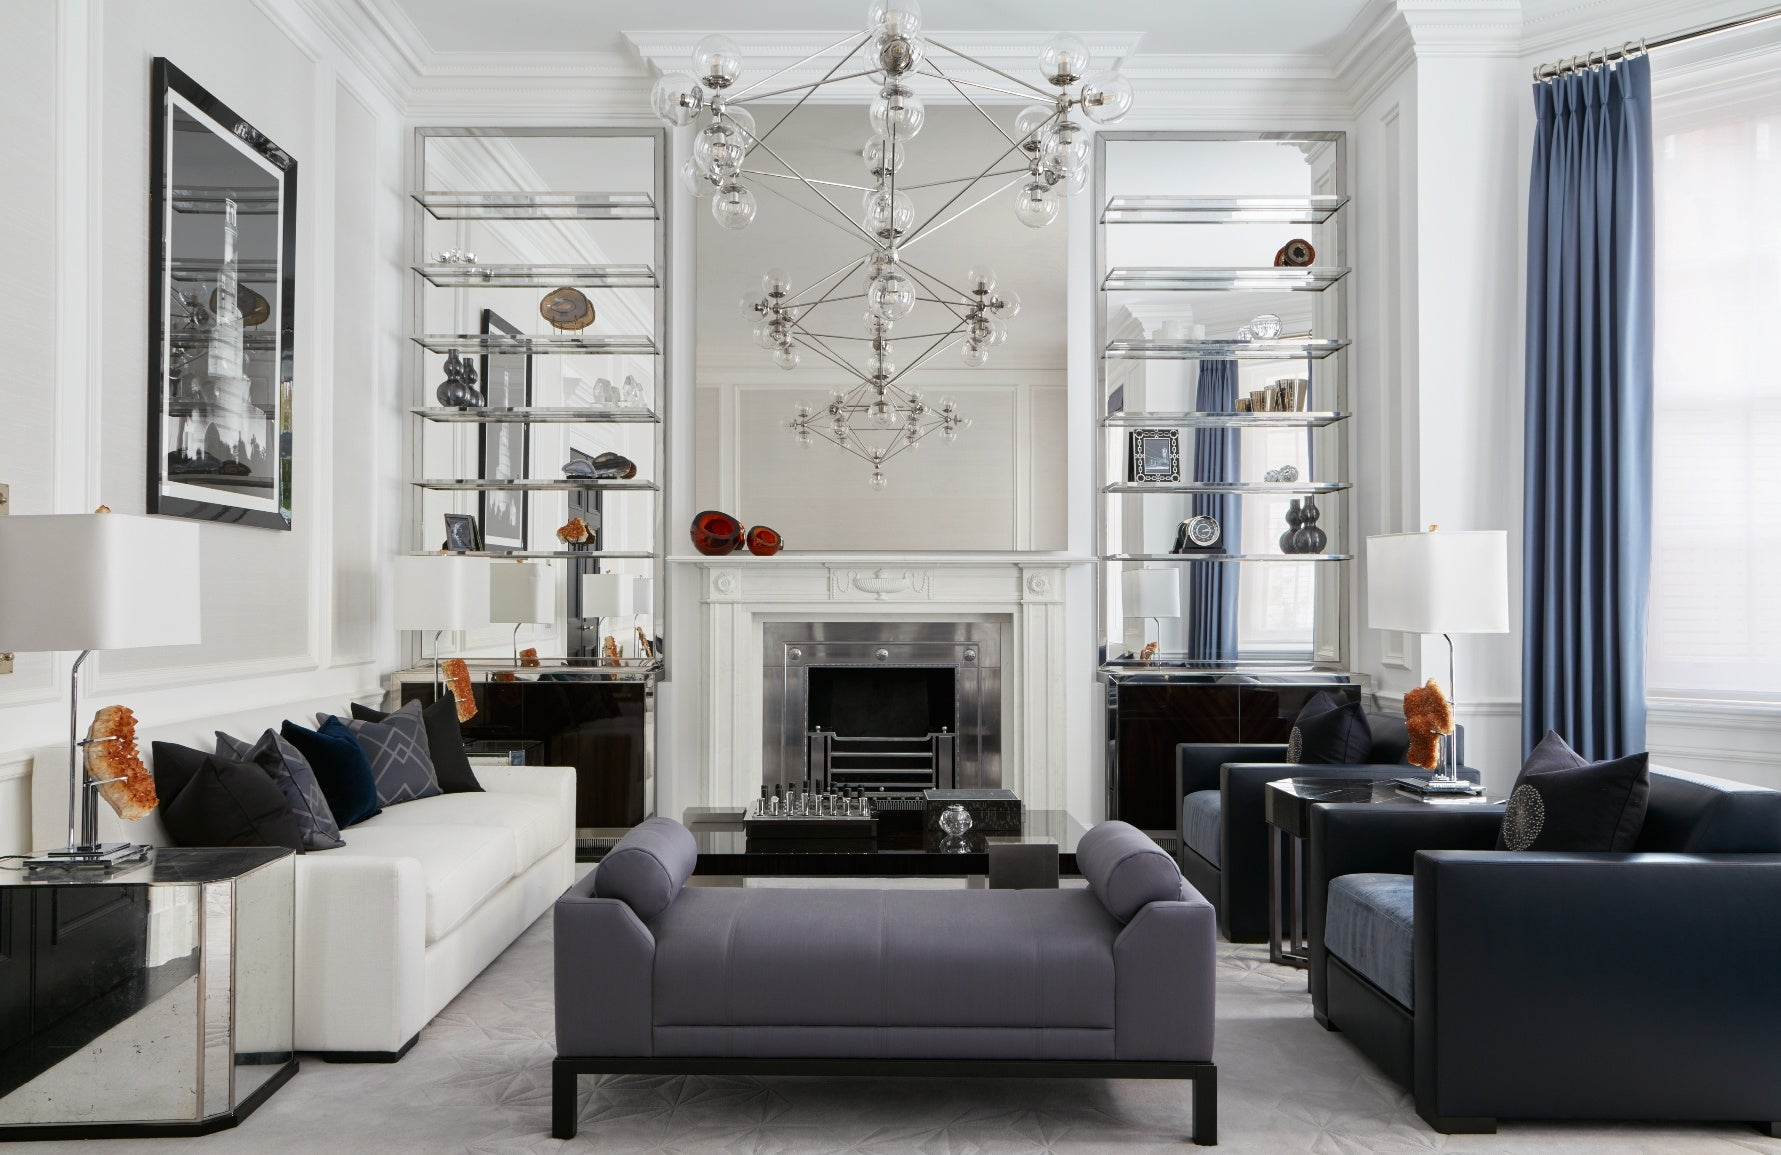 The Best of Luxury Interiors & Interior Designers in London – Katharine Pooley Mayfair Residence –LuxDeco.com Style Guide